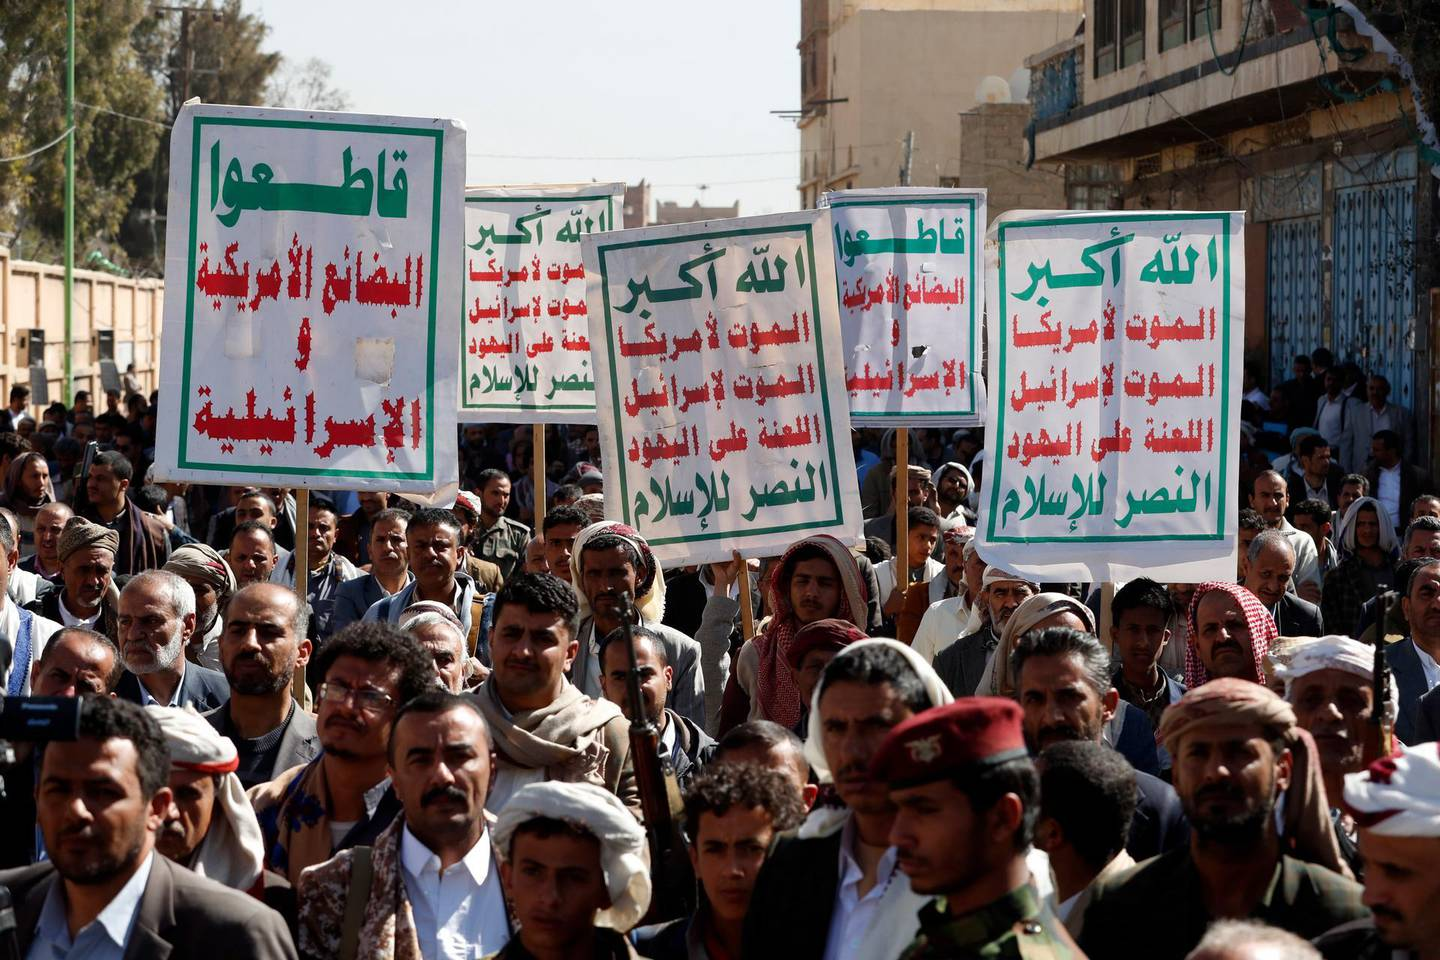 epa08950864 Yemenis hold up banners reading in Arabic 'Allah is the greatest of all, Death to America, Death to Israel, A curse on the Jews, Victory to Islam' during an anti-US protest in Sana'a, Yemen, 20 January 2021. According to reports, US Secretary of State Tony Blinken has pledged to immediately review the US terrorist designation of Yemen's Houthi movement a day after Donald Trump's government designated it as a Foreign Terrorist Organization (FTO).  EPA/YAHYA ARHAB